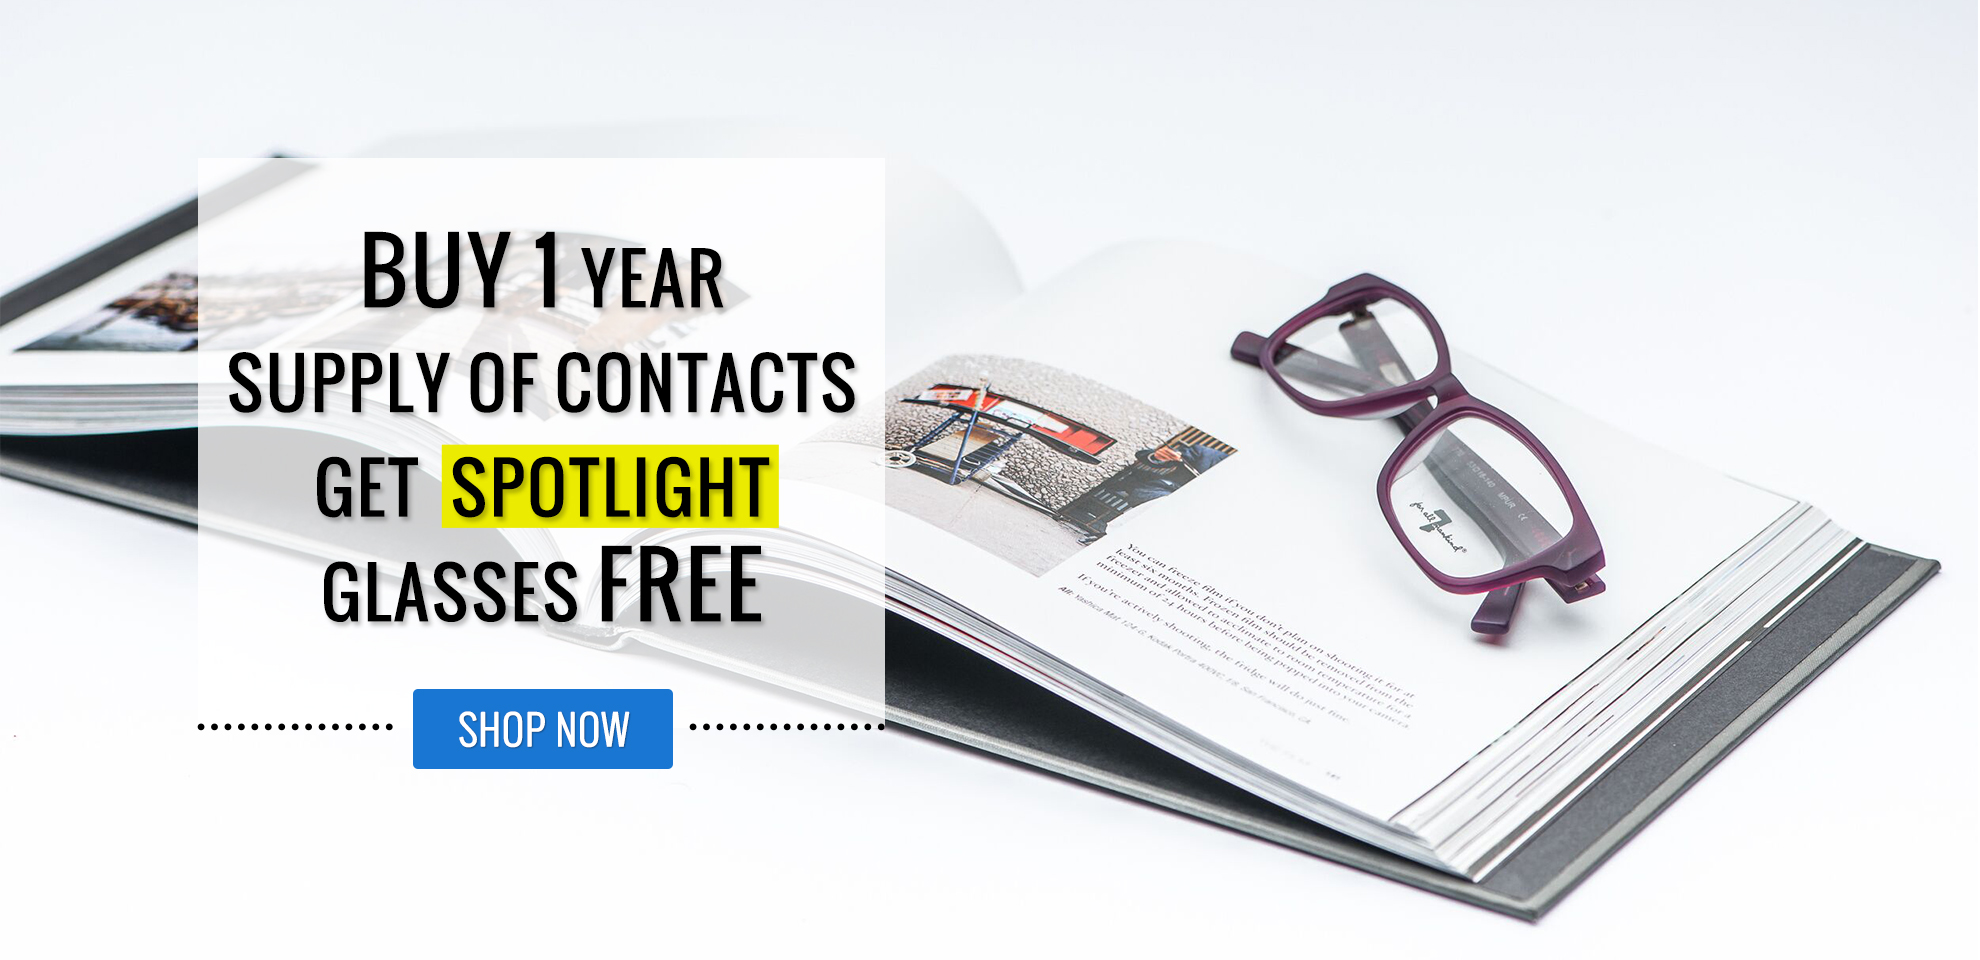 Buy 1 Year Supply of Contacts Get Free Spotlight Glasses